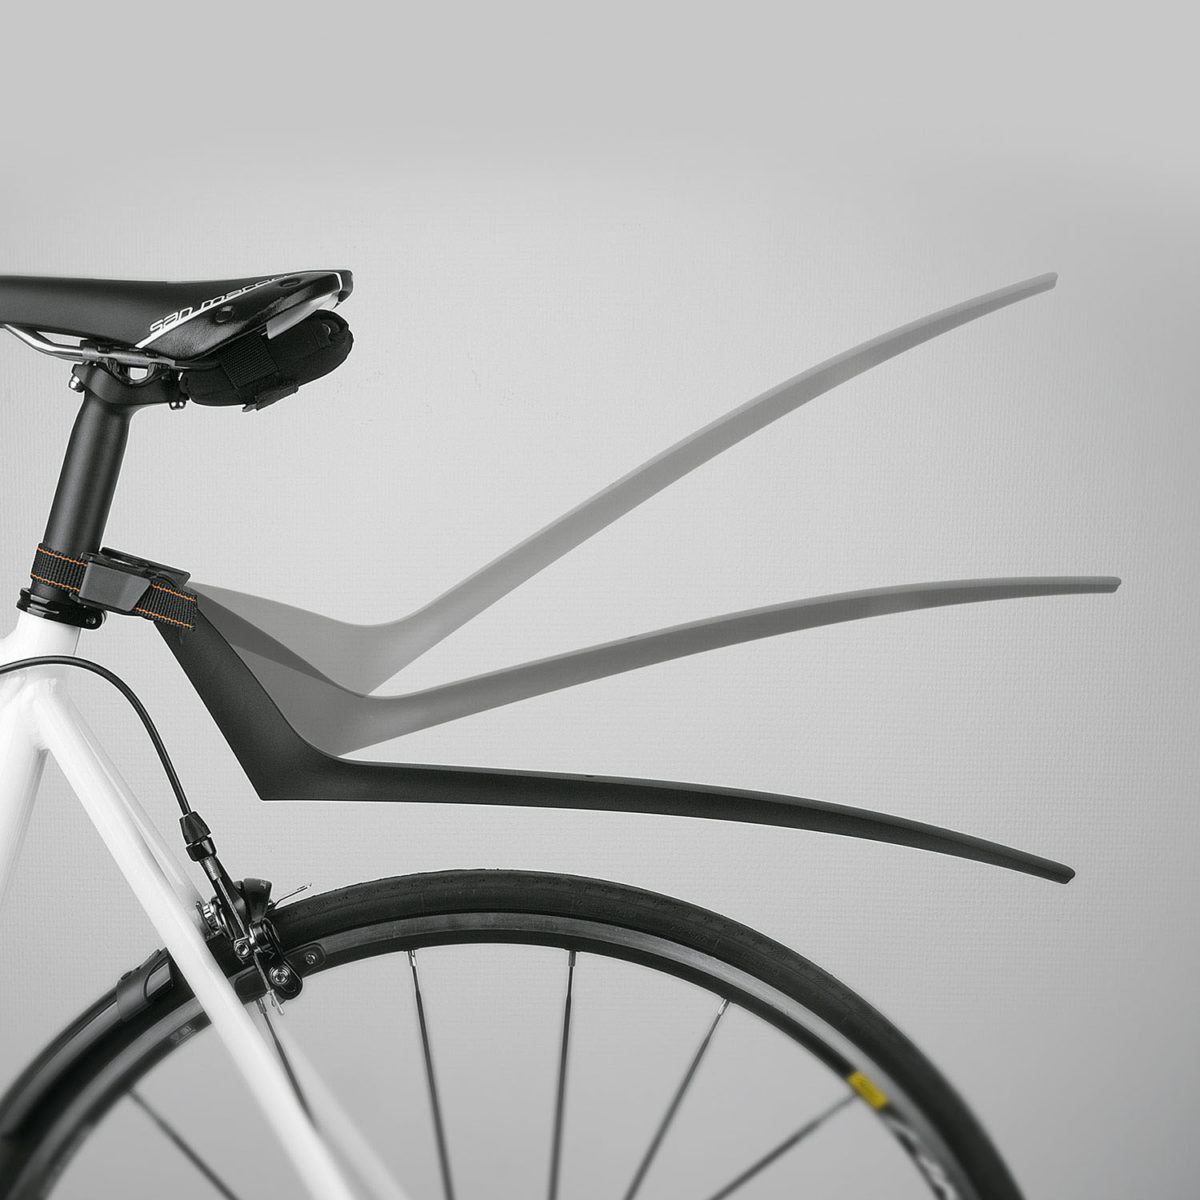 SKS S-Blade Quick Release Rear Mudguard